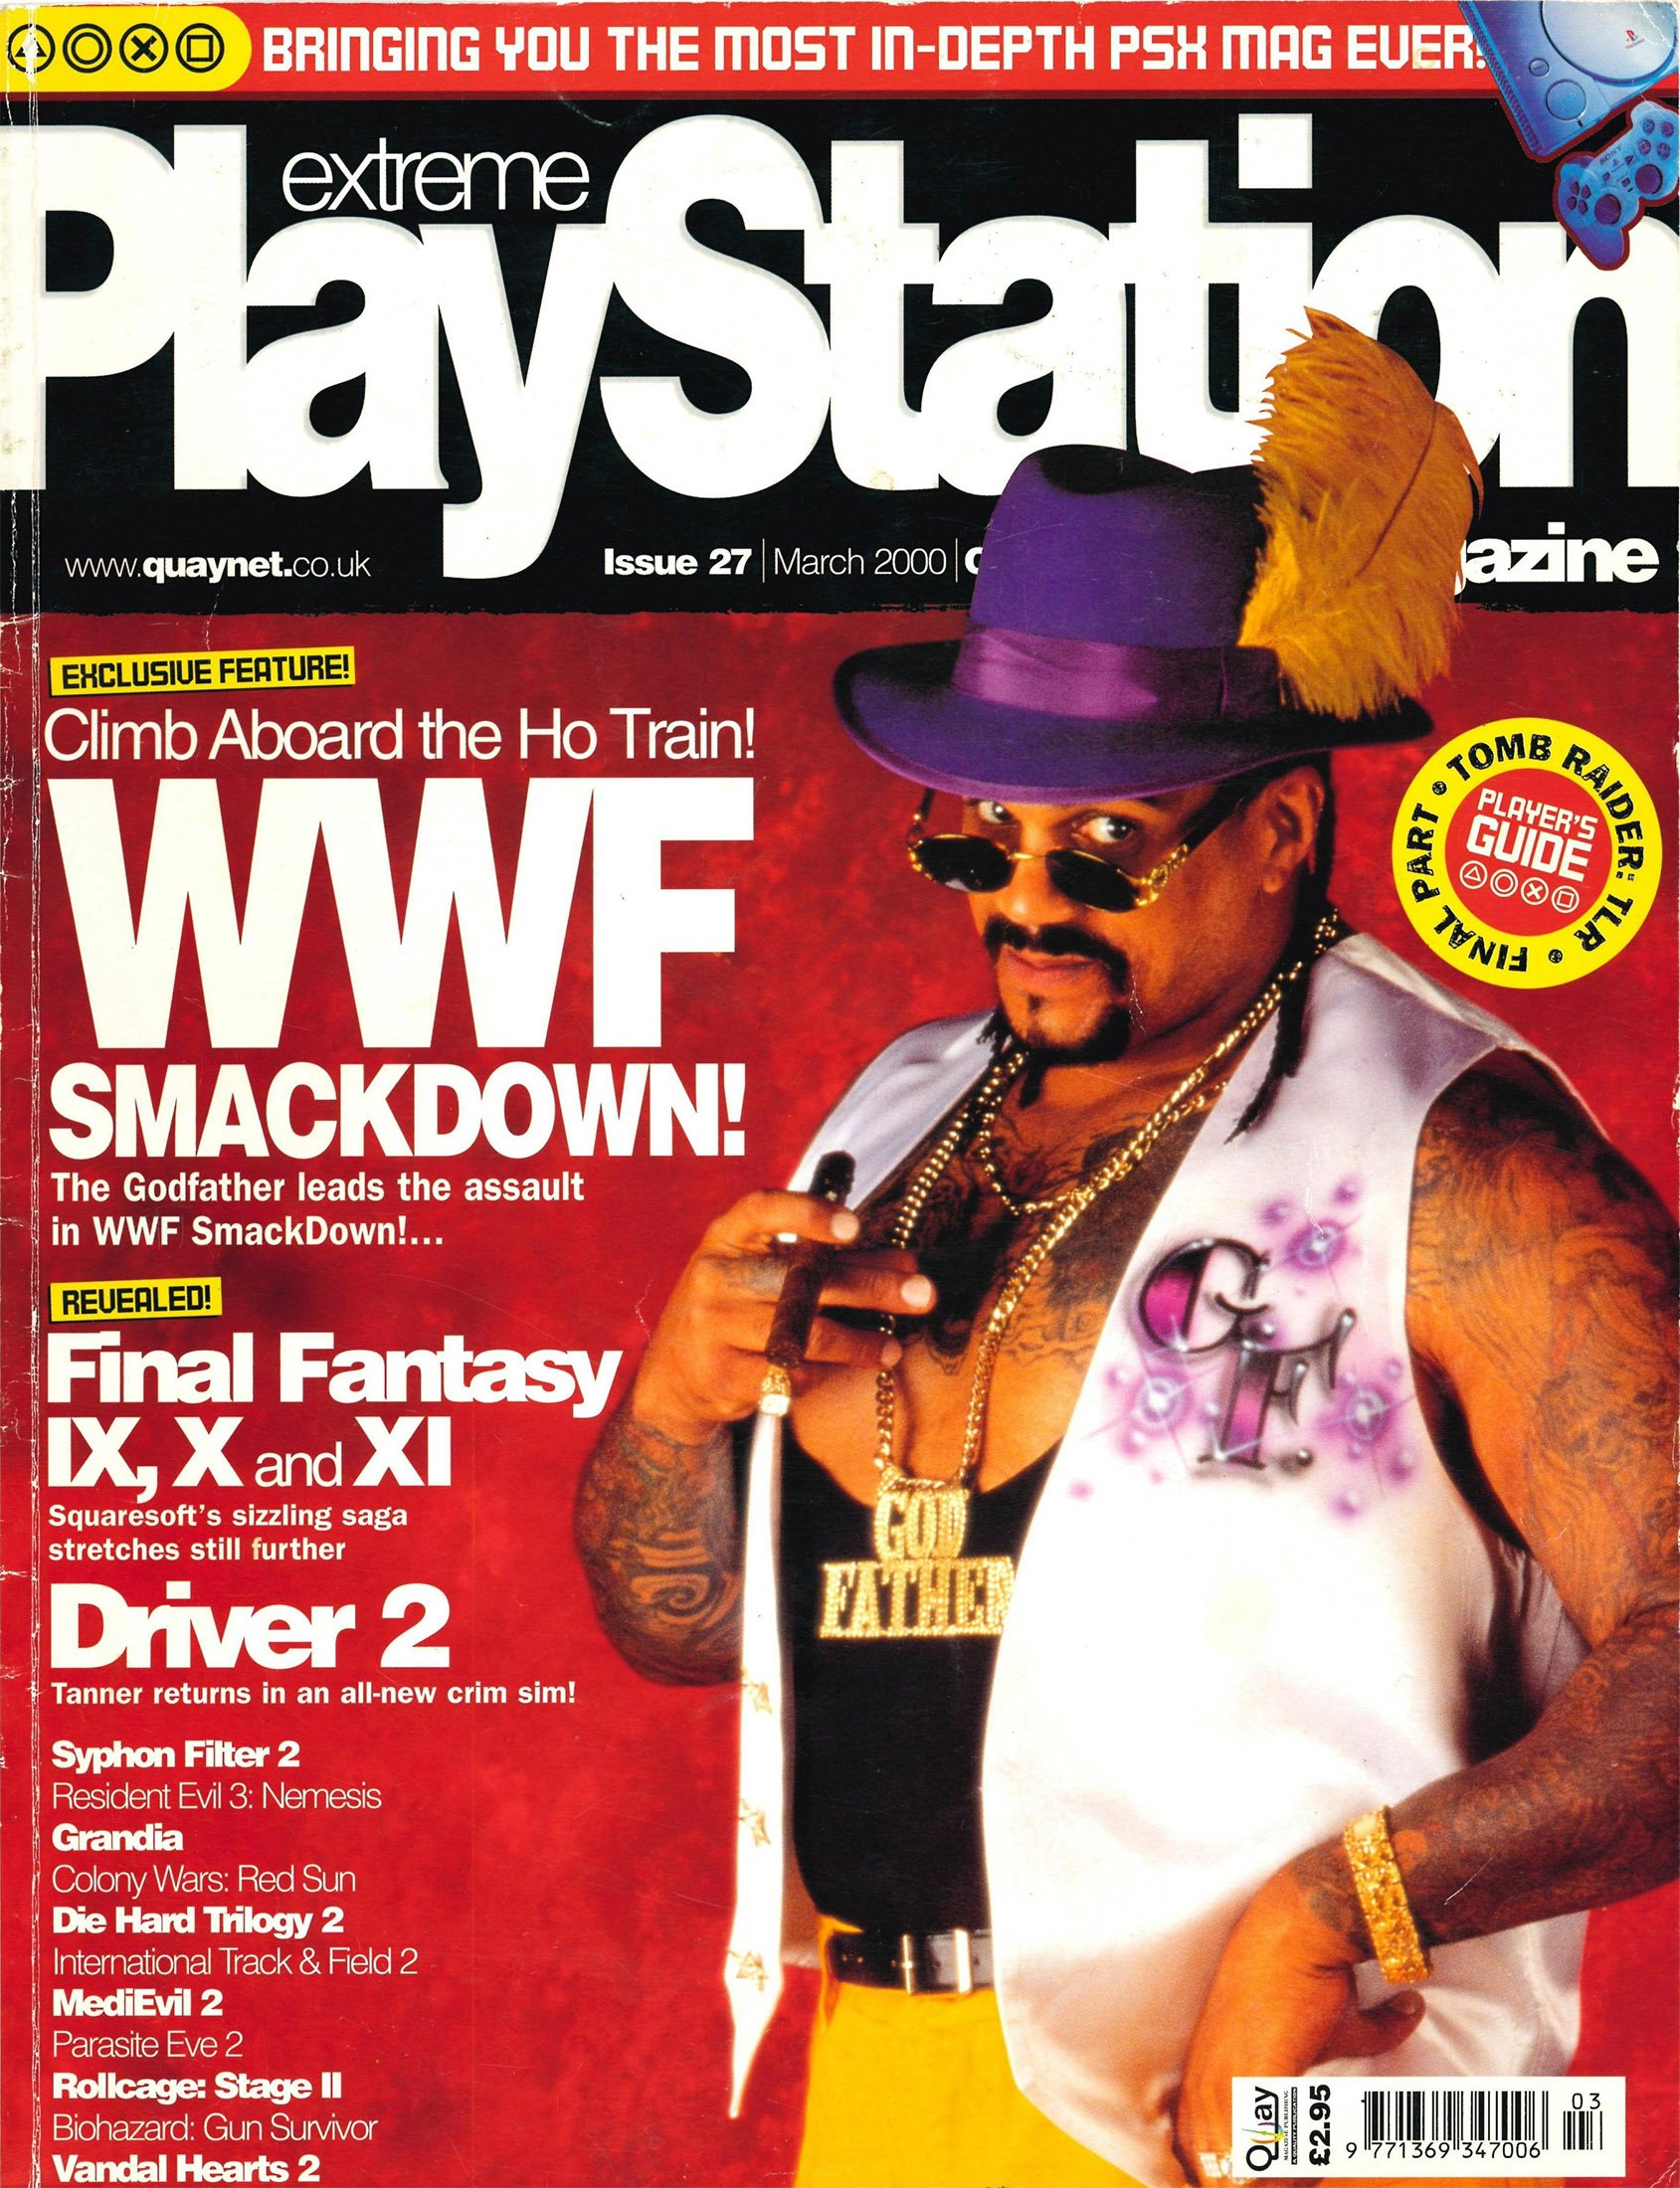 Extreme Playstation Issue 27 (March 2000)